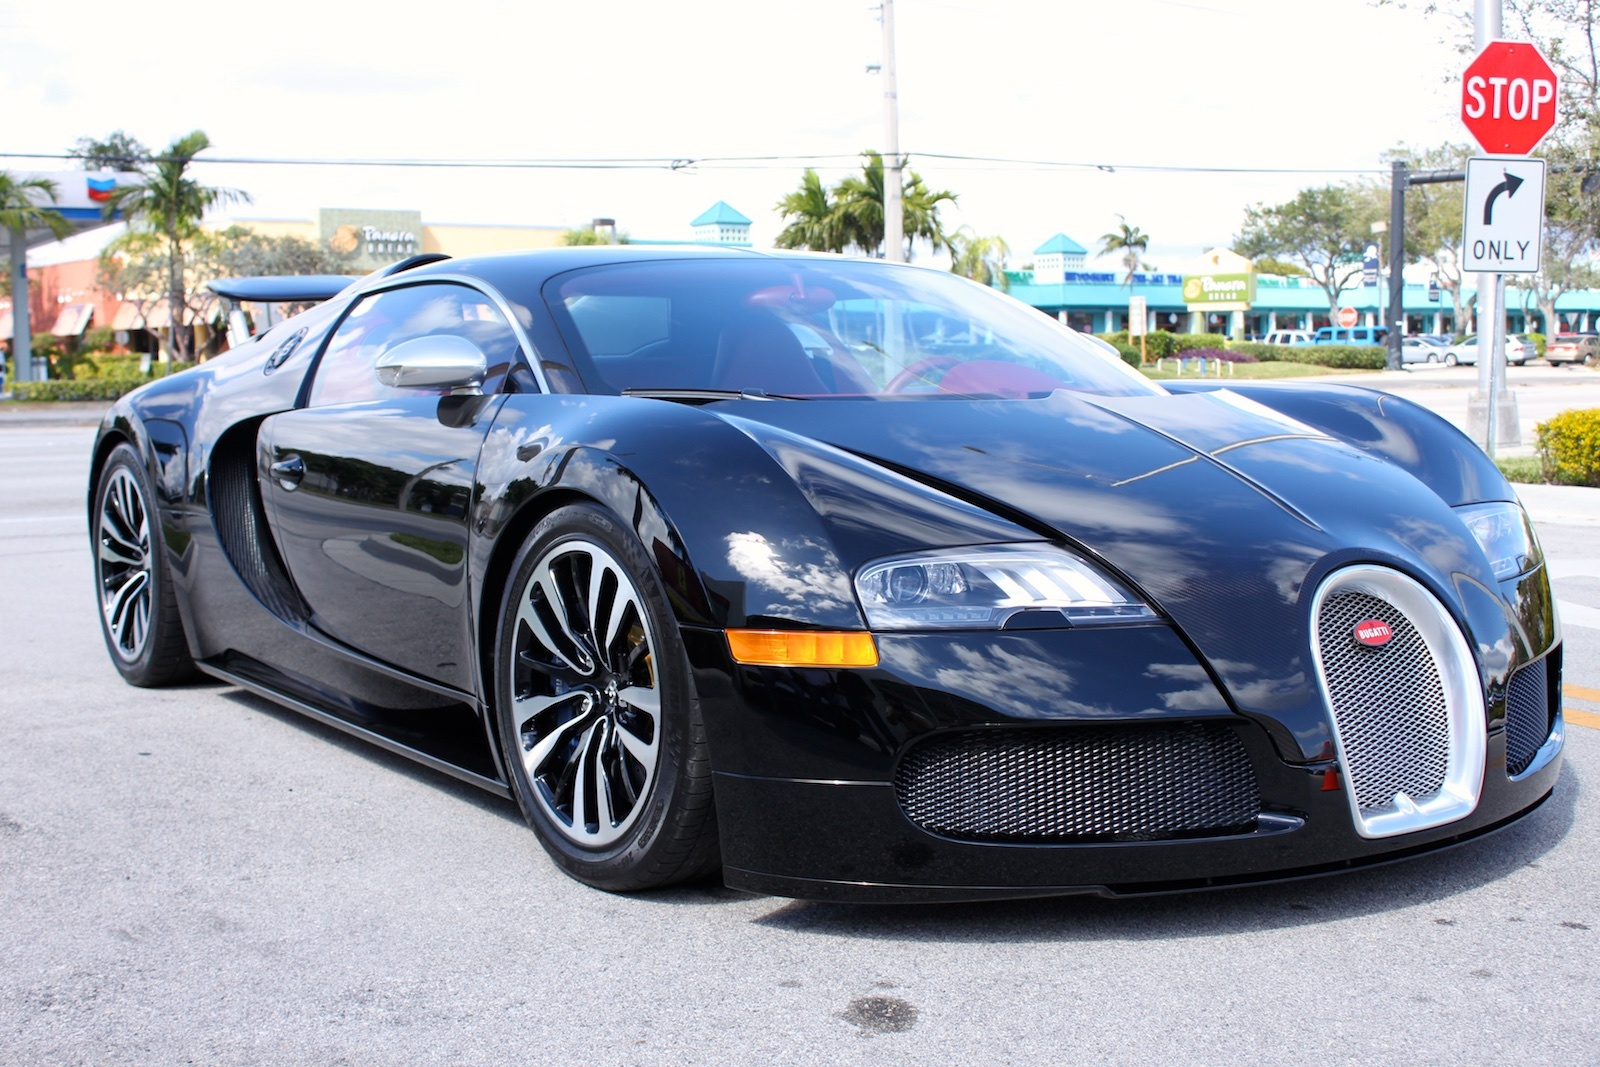 2010 Bugatti Veyron Eb 16 4 Sang Noir Exotic Car List